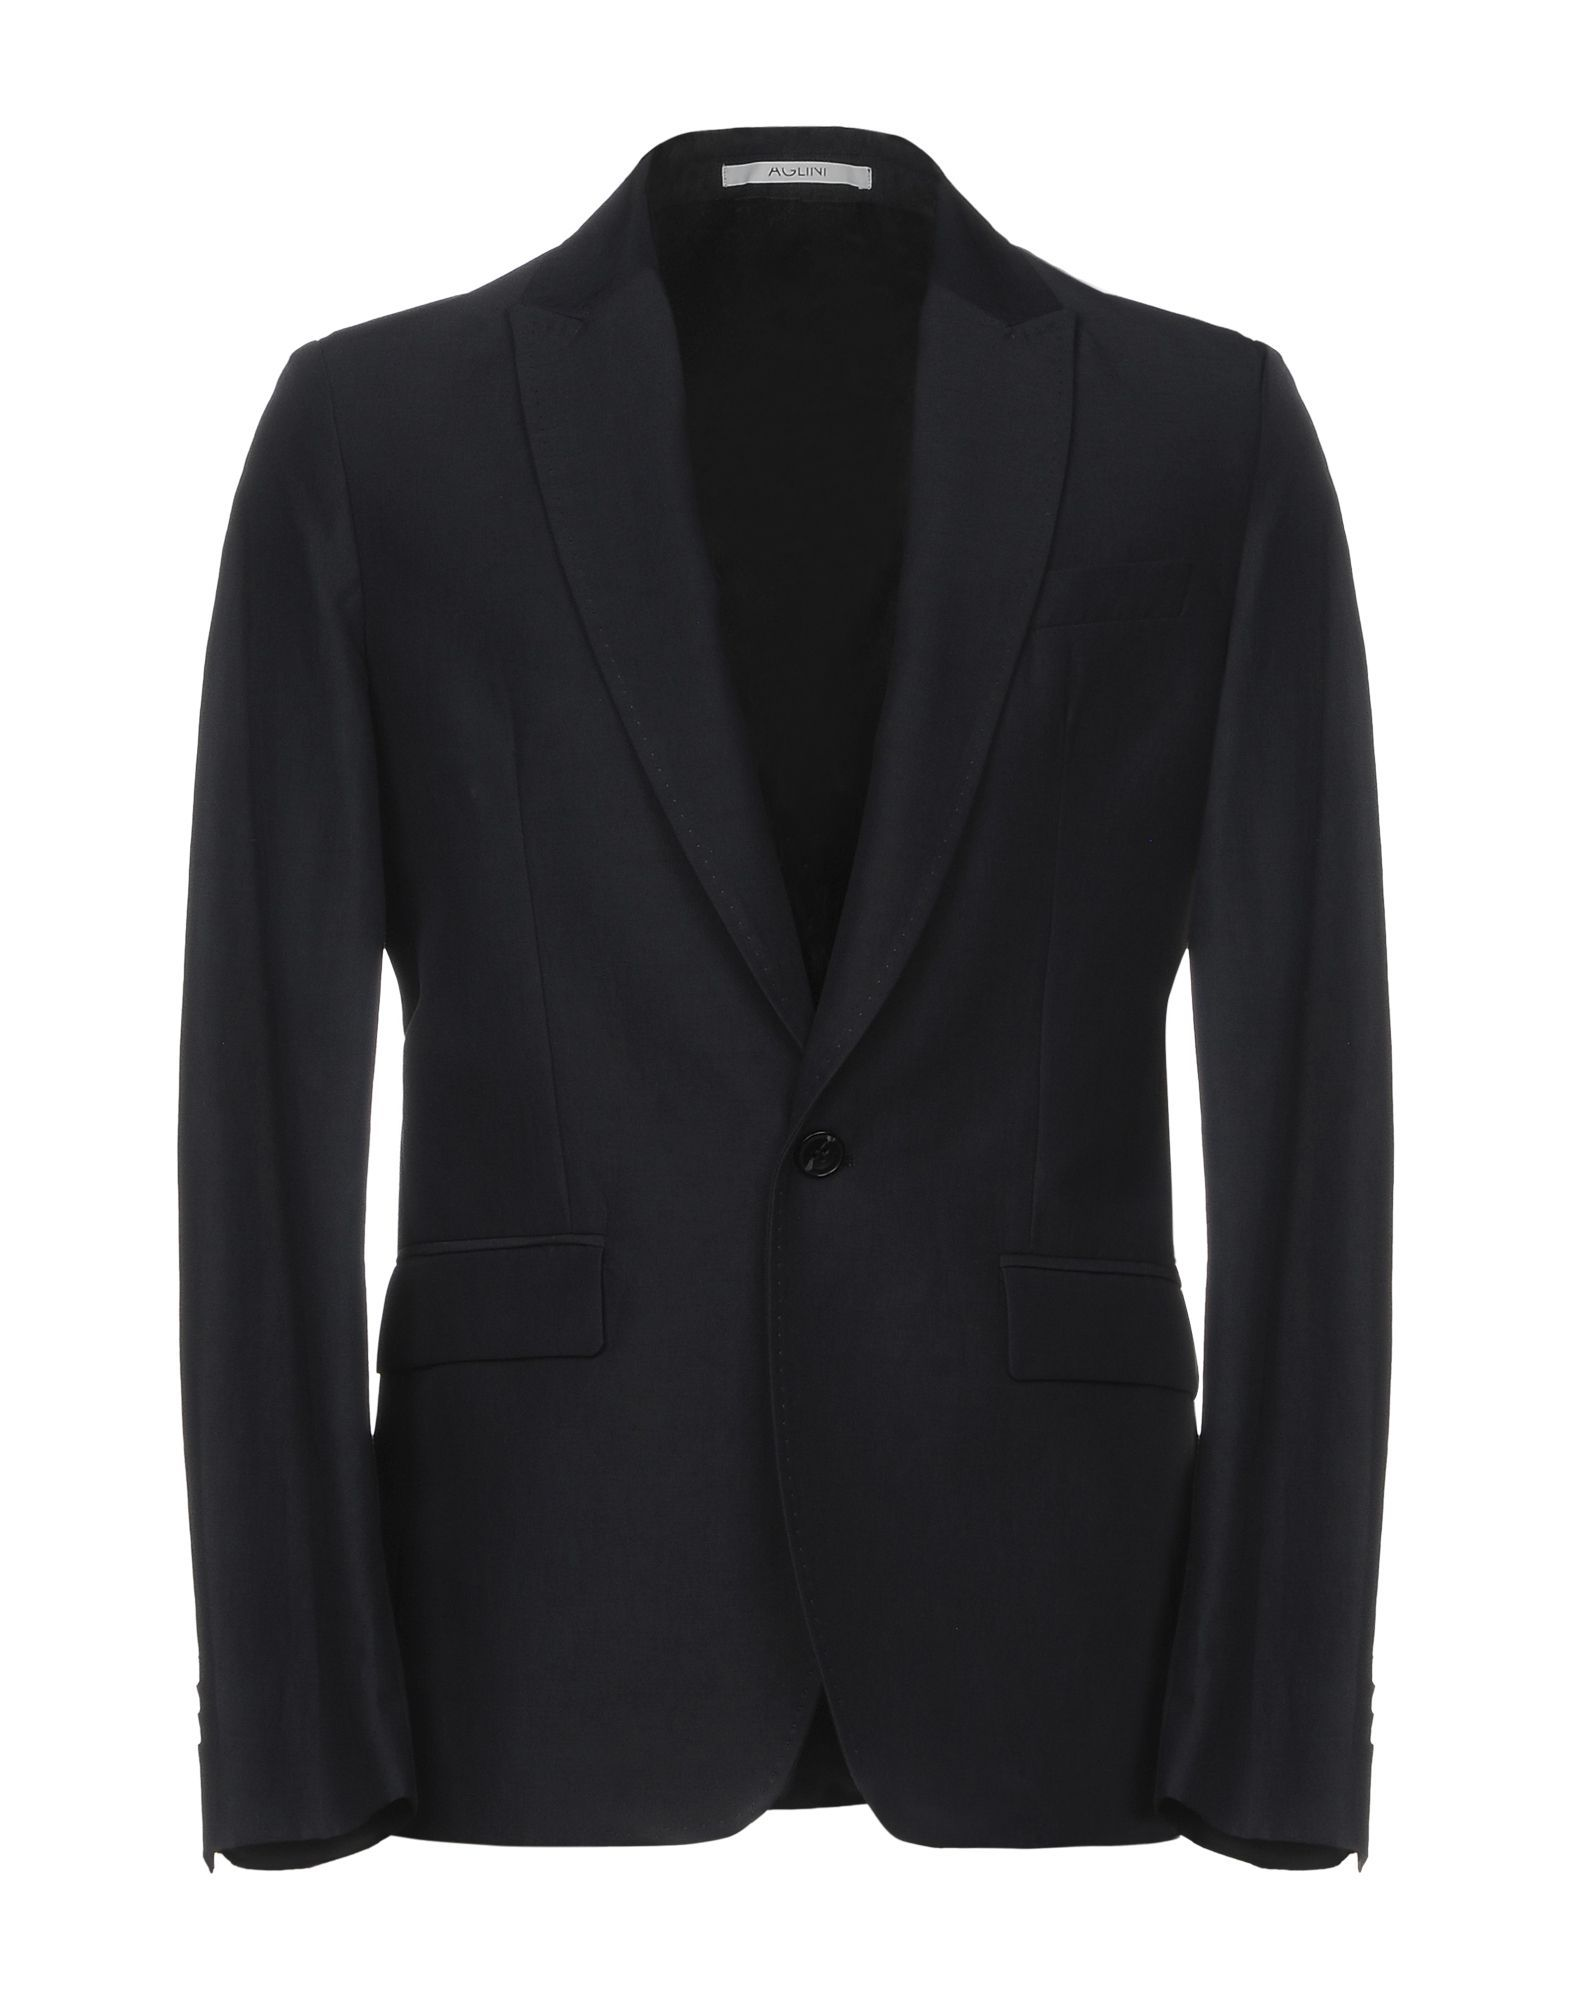 SUITS AND JACKETS Aglini Dark blue Man Cotton